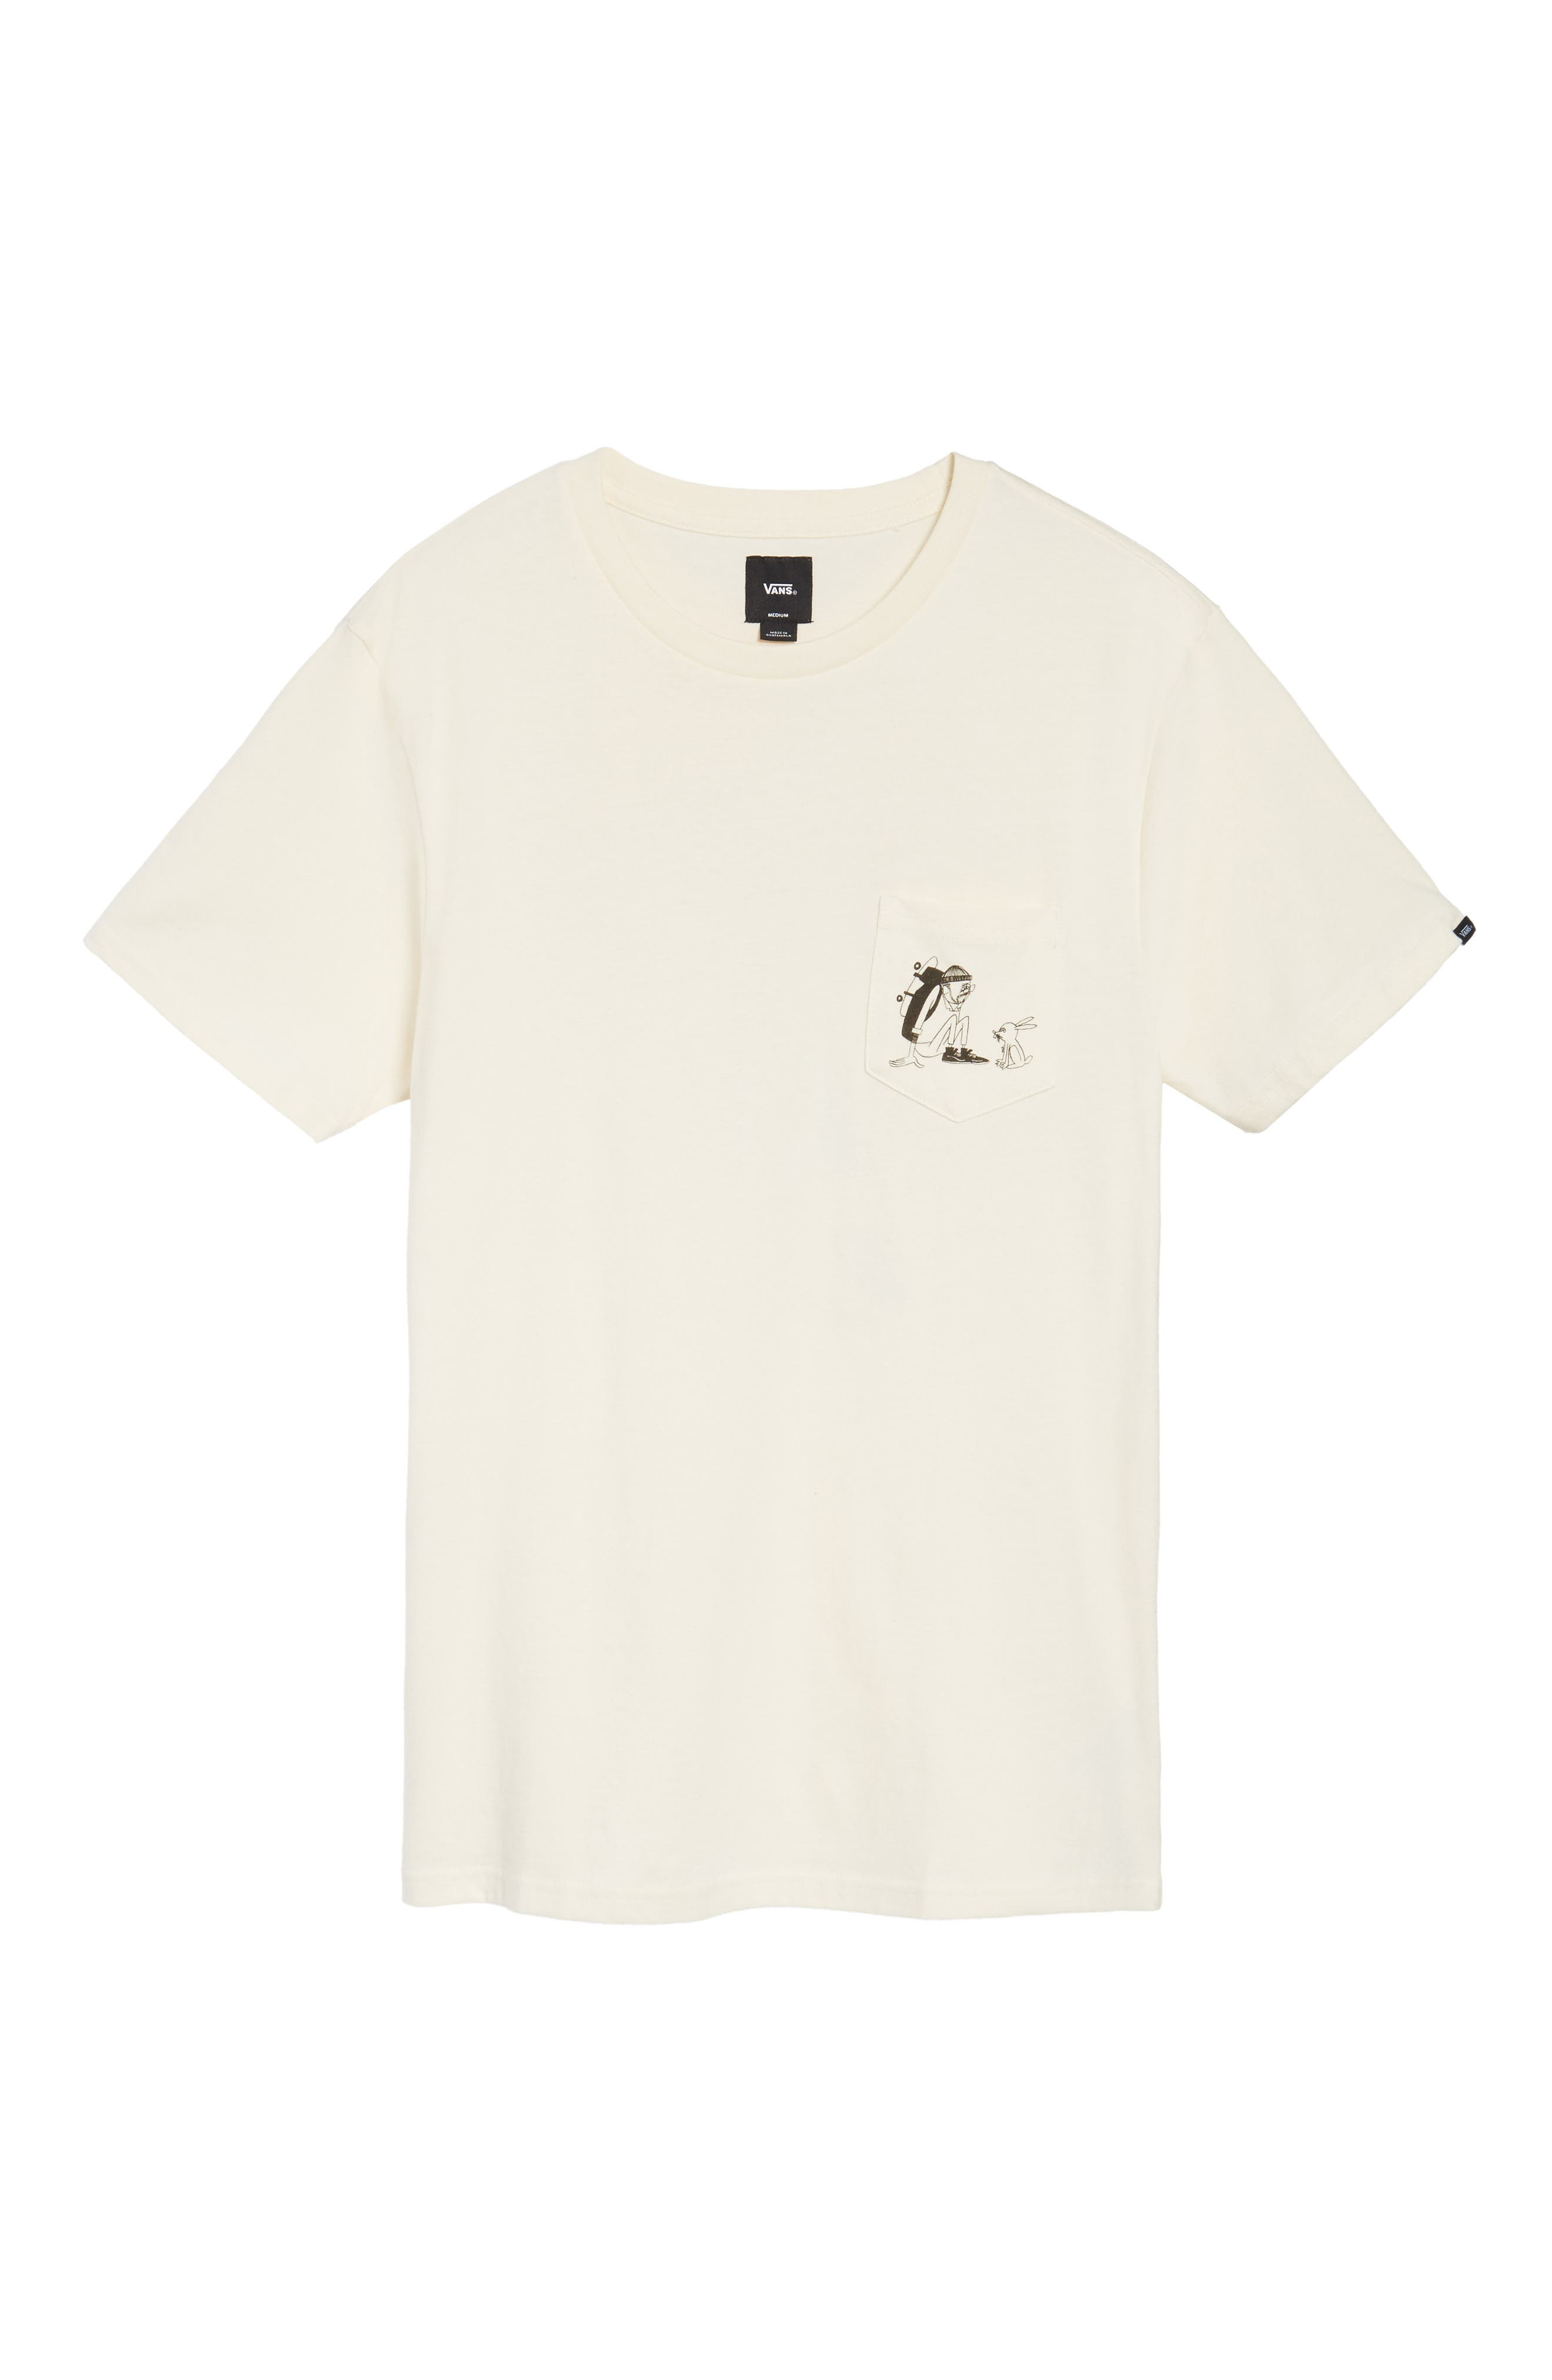 x Yusuke Hanai Outdoors Graphic Pocket T-Shirt,                             Alternate thumbnail 6, color,                             100